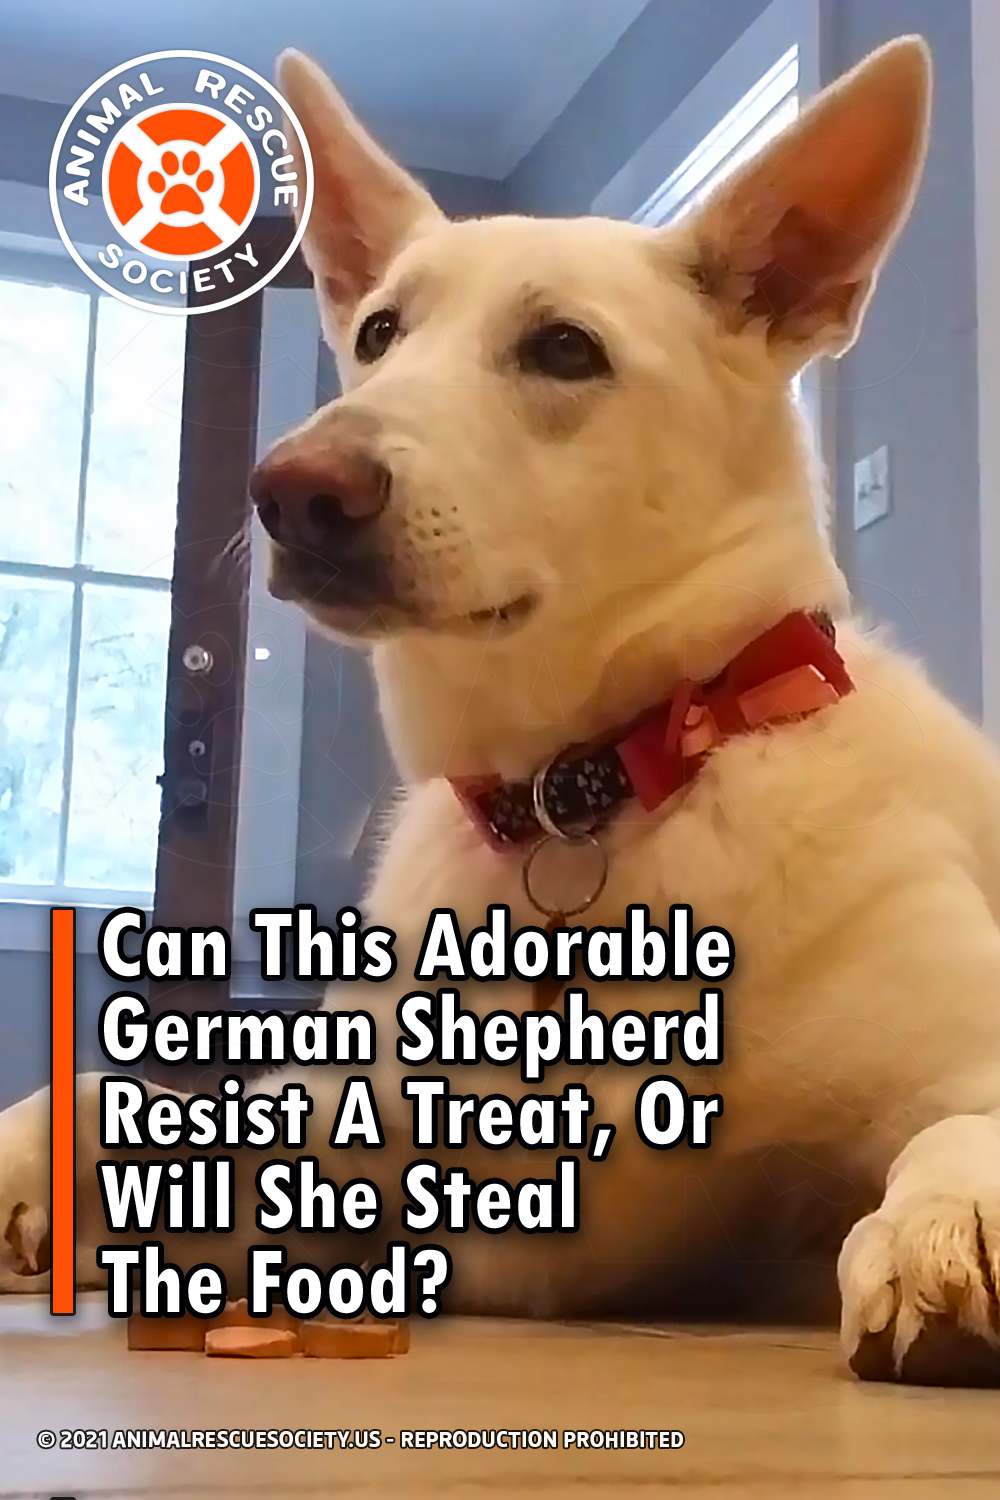 Can This Adorable German Shepherd Resist A Treat, Or Will She Steal The Food?